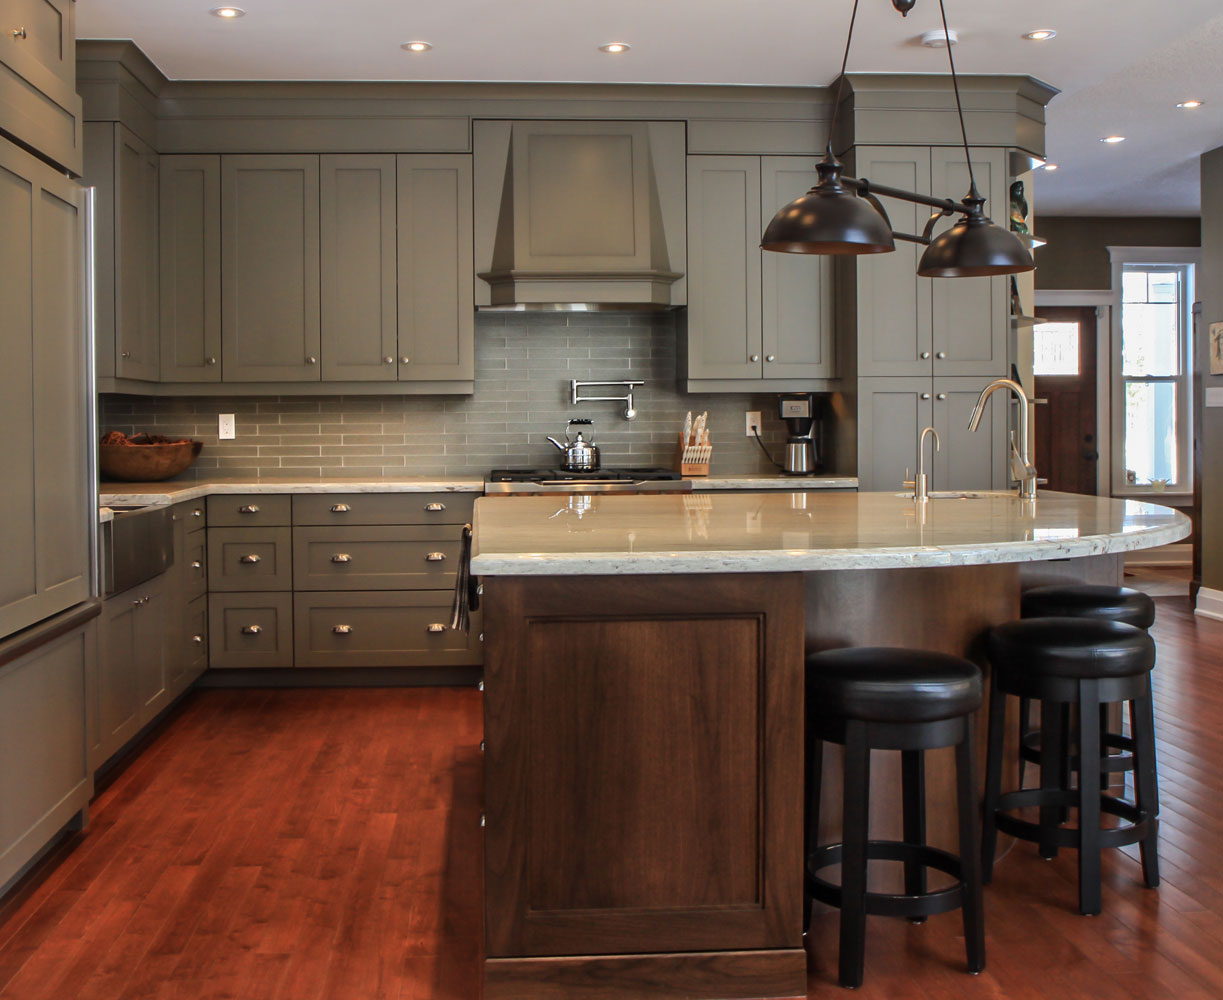 Warm kitchen design with grey cabinets and dark wood cabinets on the island and hardwood floors - Total Living Concepts barrie ontario